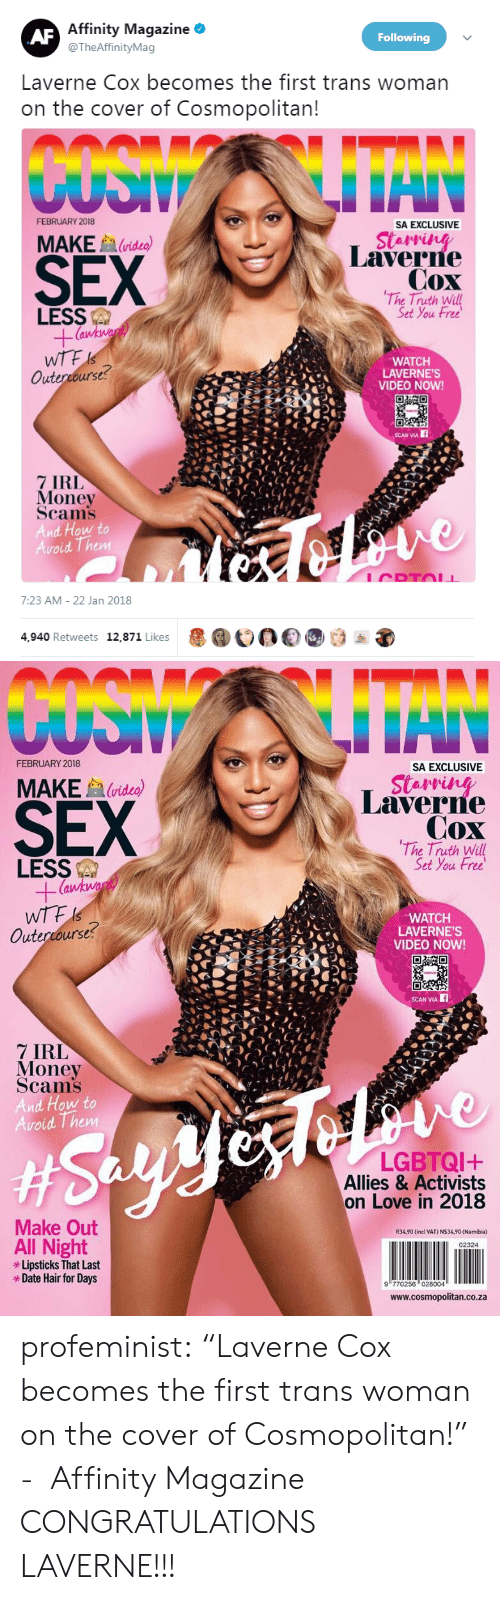 "Cosmopolitan: Affinity Magazine *  @TheAffinityMag  Following  Laverne Cox becomes the first trans woman  on the cover of Cosmopolitan  FEBRUARY 2018  SA EXCLUSIVE  SEX  MAKE  (video)  Laverne  Cox  The Truth Will  Set You Free  LESS  WTF  Outercourse  WATCH  LAVERNE'S  VIDEO NOW!  CEL  7 IRL  Money  Scams  And How to  Avoid Them  7:23 AM- 22 Jan 2018  4,940 Retweets 12,871 Likes  1000   FEBRUARY 2018  SA EXCLUSIVE  SEX  MAKEvideo)  Laverre  Cox  The Truth Will  Set You Free  LESS  (a  WATCH  LAVERNE'S  VIDEO NOW!  Outercourse?  SCAN VIA  7 IRL  Money  Scams  And How to  oid Them  LGBTQI+  Allies & Activists  on Love in 2018  Make Out  R34,90 (incl VAT) N$34,90 (Namibia)  All Night  Lipsticks That Last  *Date Hair for Days  02324  9 770256 028004  www.cosmopolitan.co.za profeminist:    ""Laverne Cox becomes the first trans woman on the cover of Cosmopolitan!""   -  Affinity Magazine   CONGRATULATIONS LAVERNE!!!"